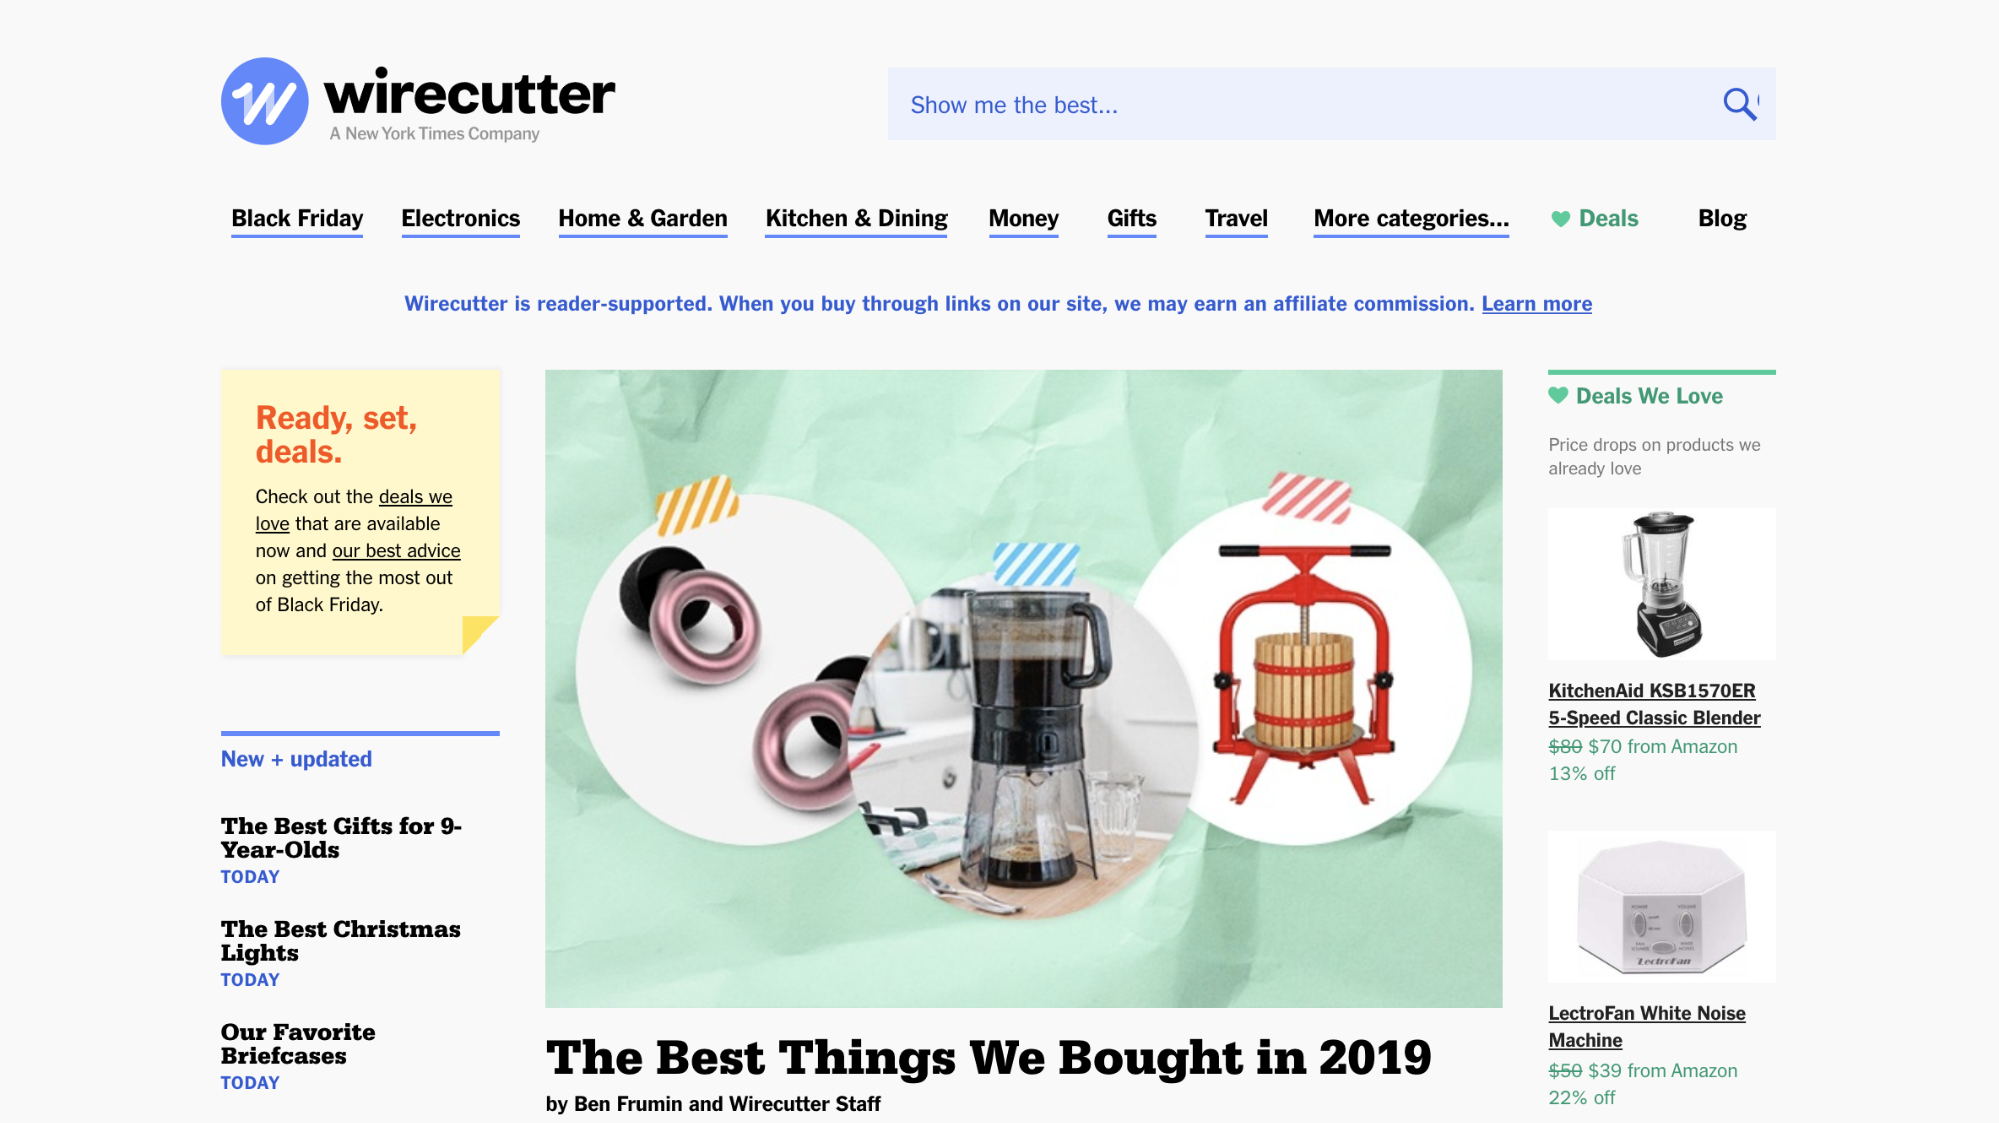 Image of Wirecutter's homepage, a business that monetizes writing reviews and roundups of home products like blenders or white noise machines